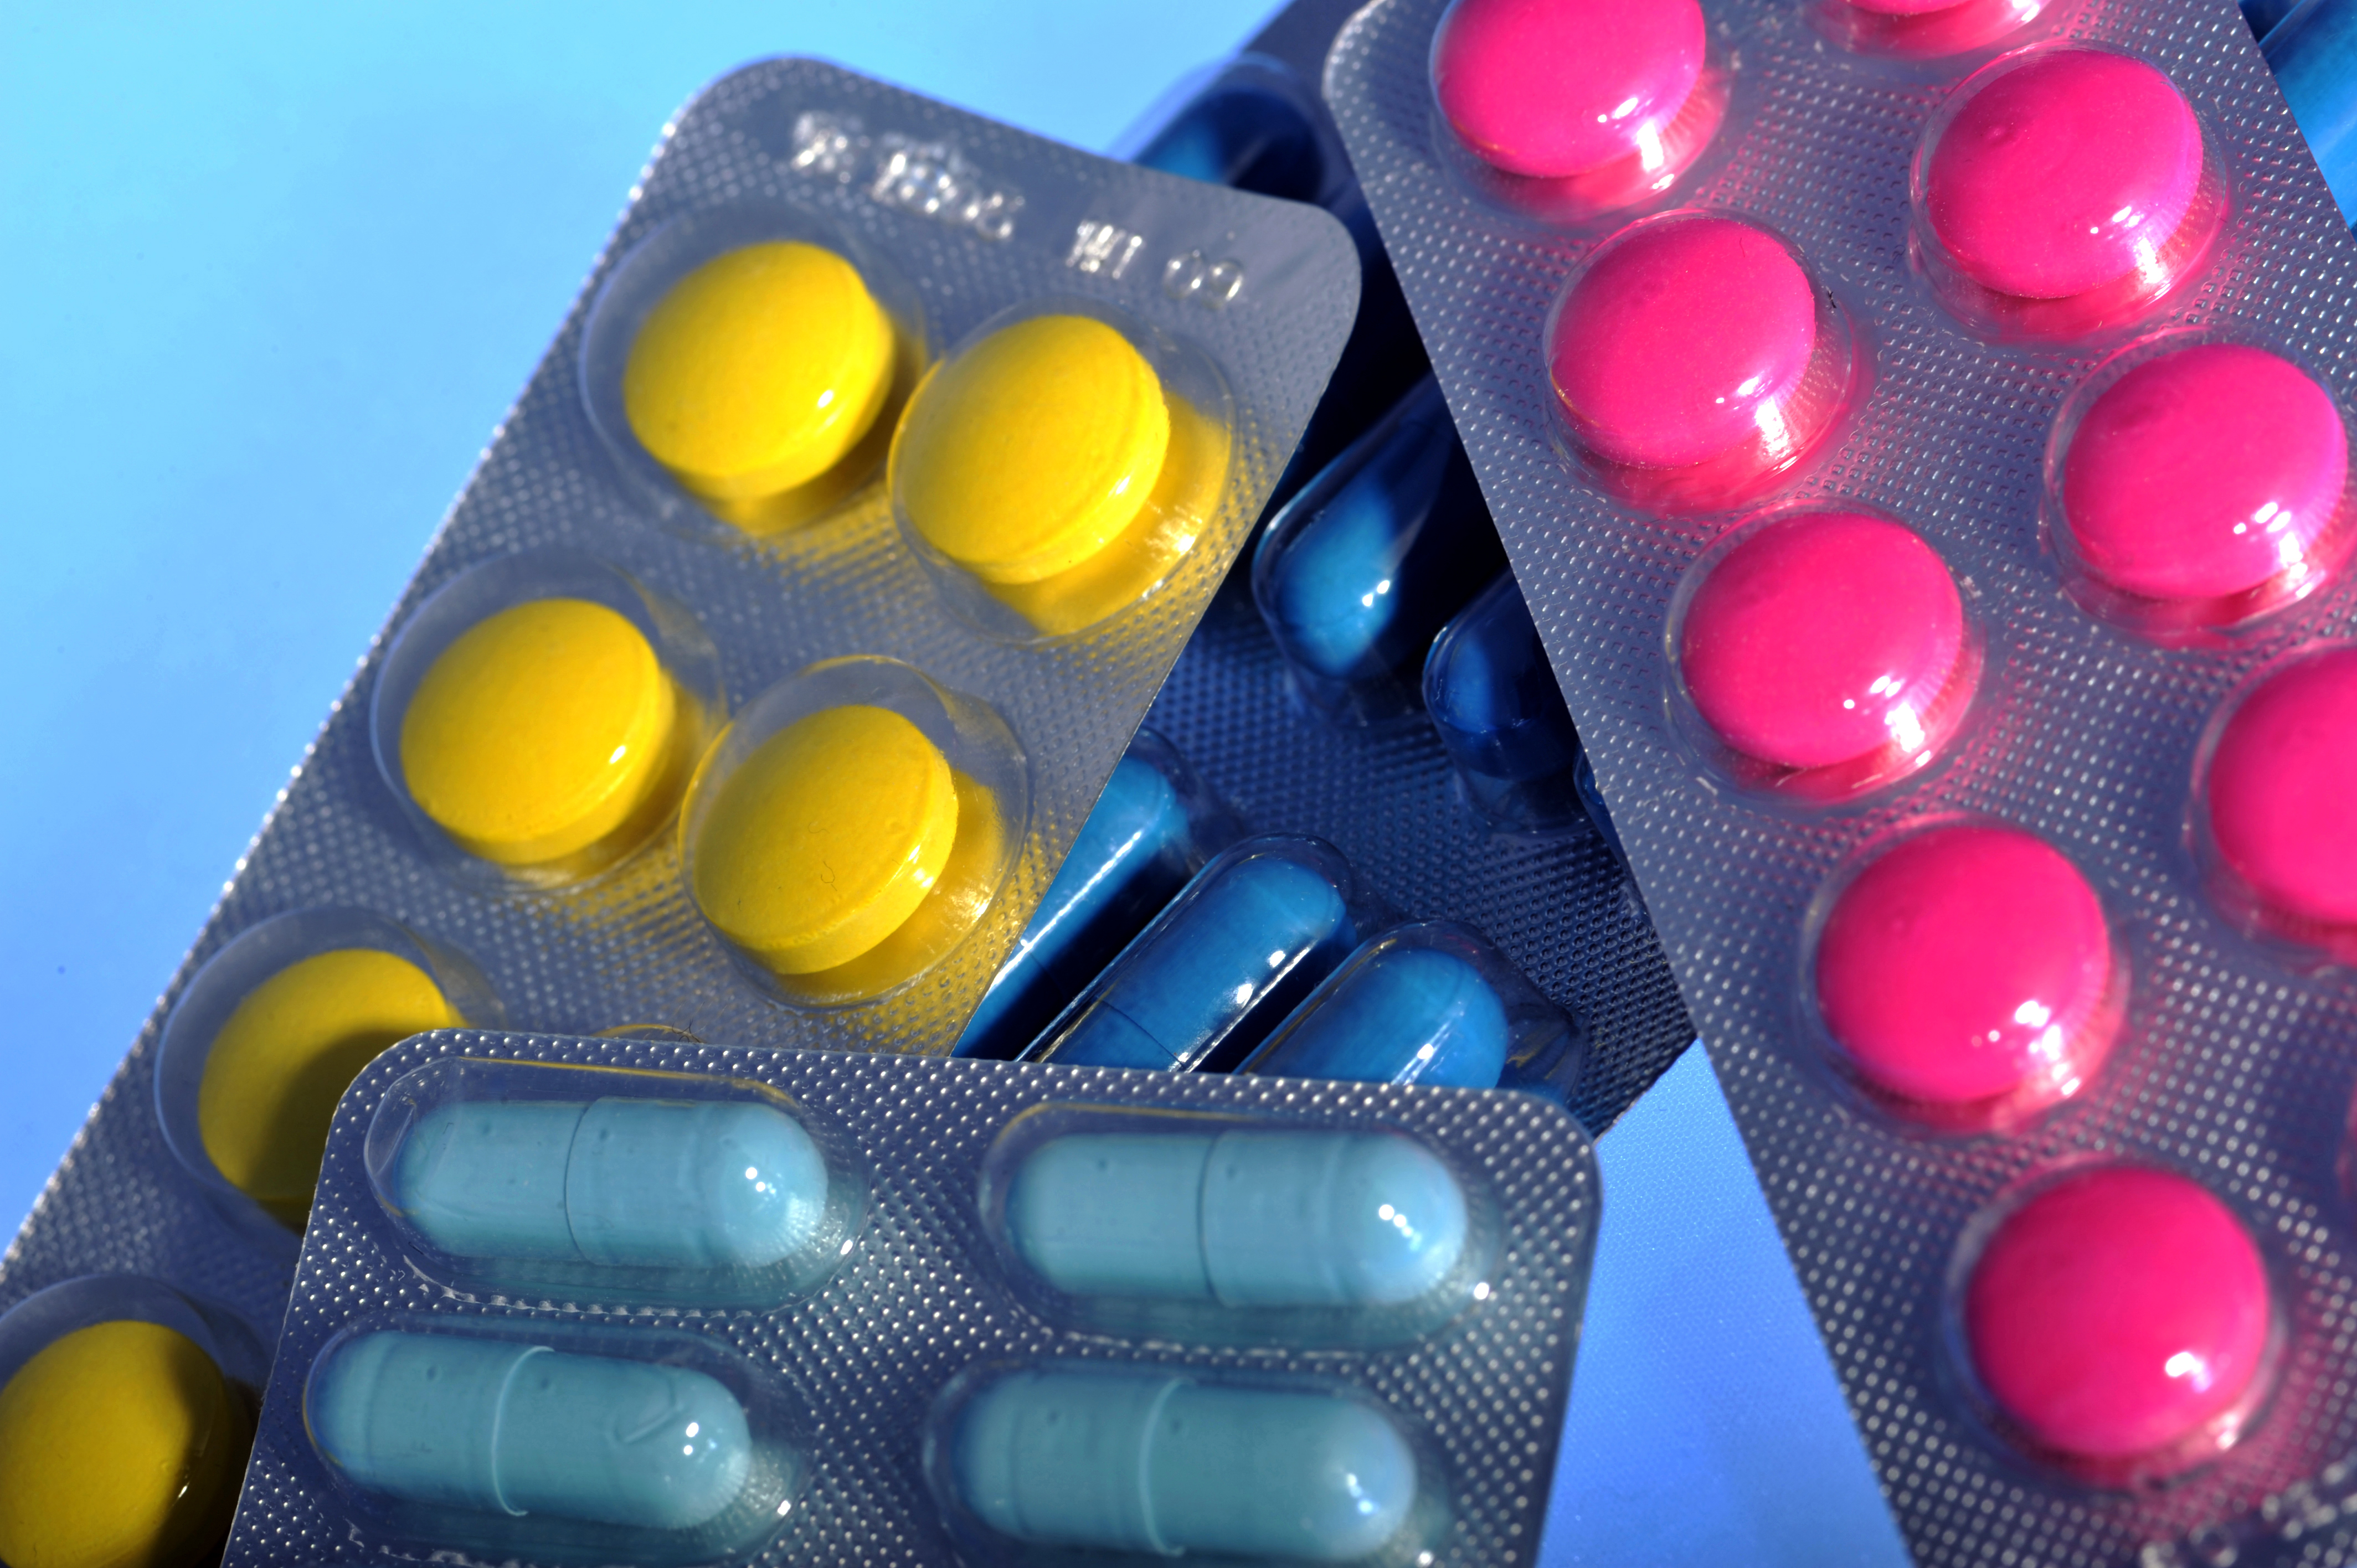 Viagra side effects interactions